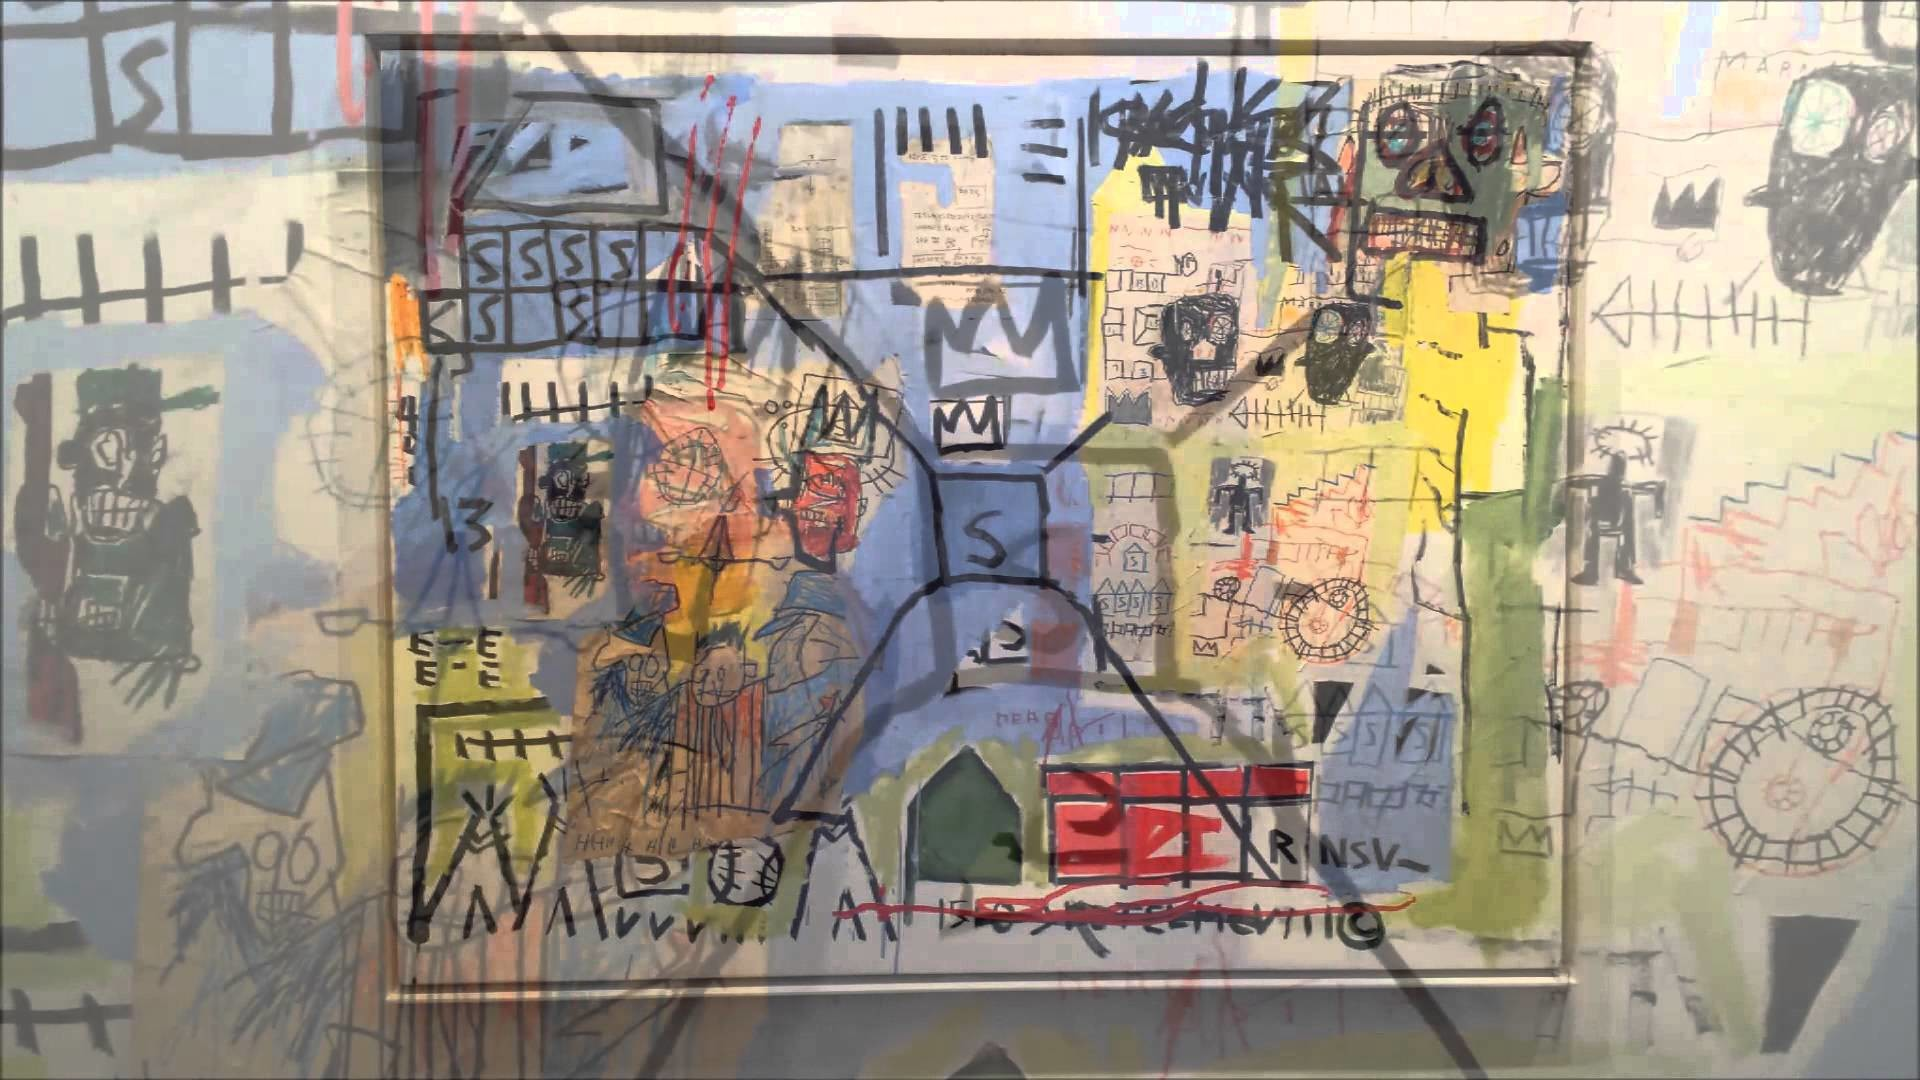 Comparison between Haring and Basquiat (Christian Munoz)